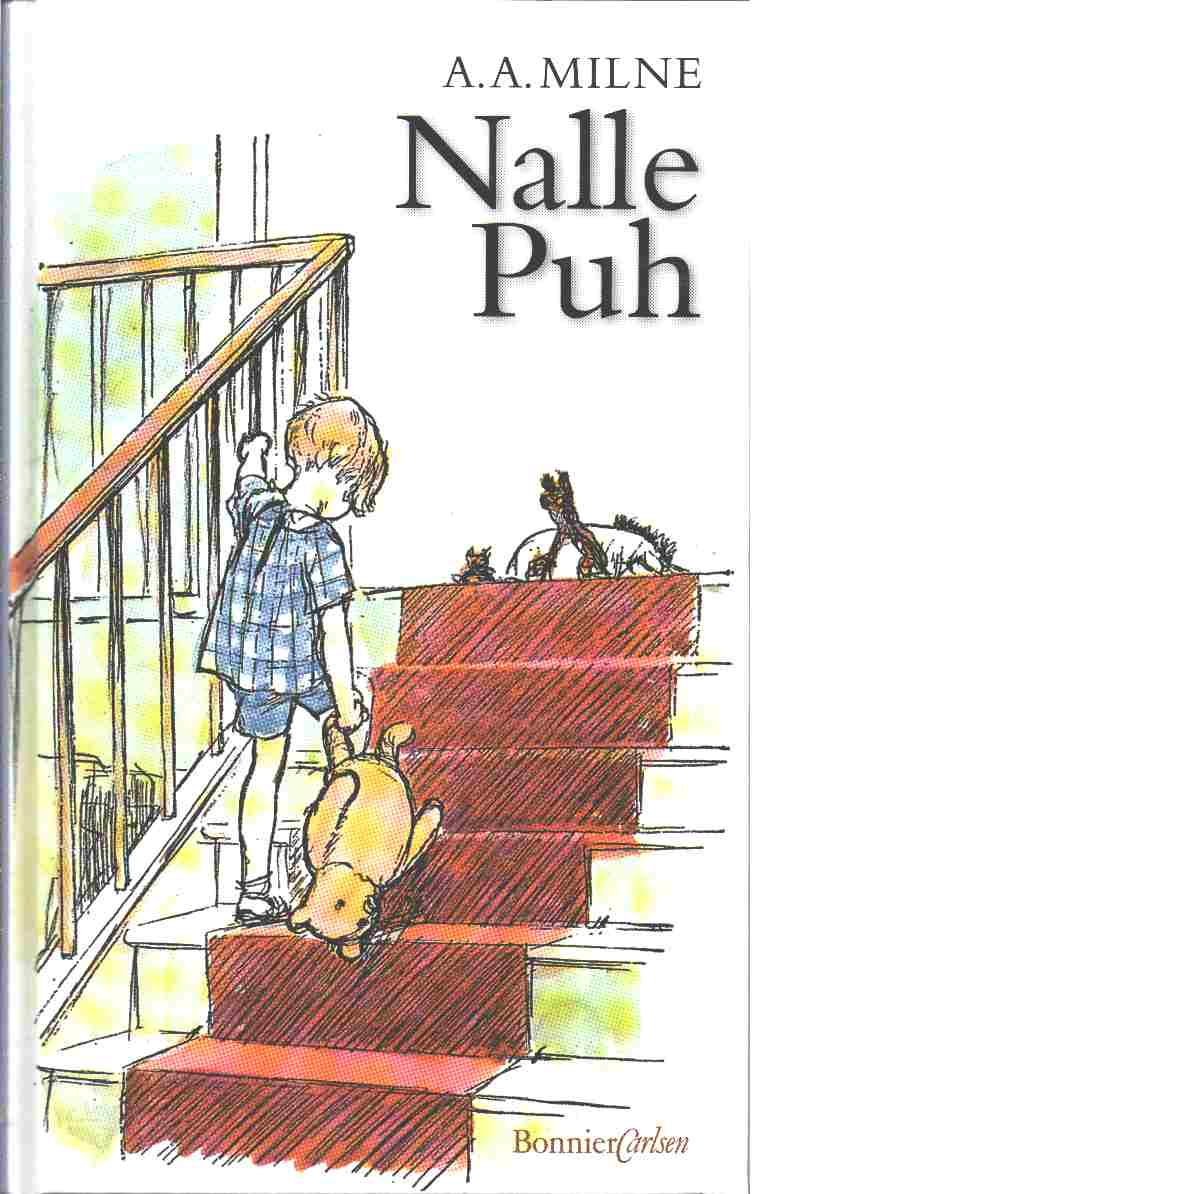 Nalle Puh - Milne, A. A.,